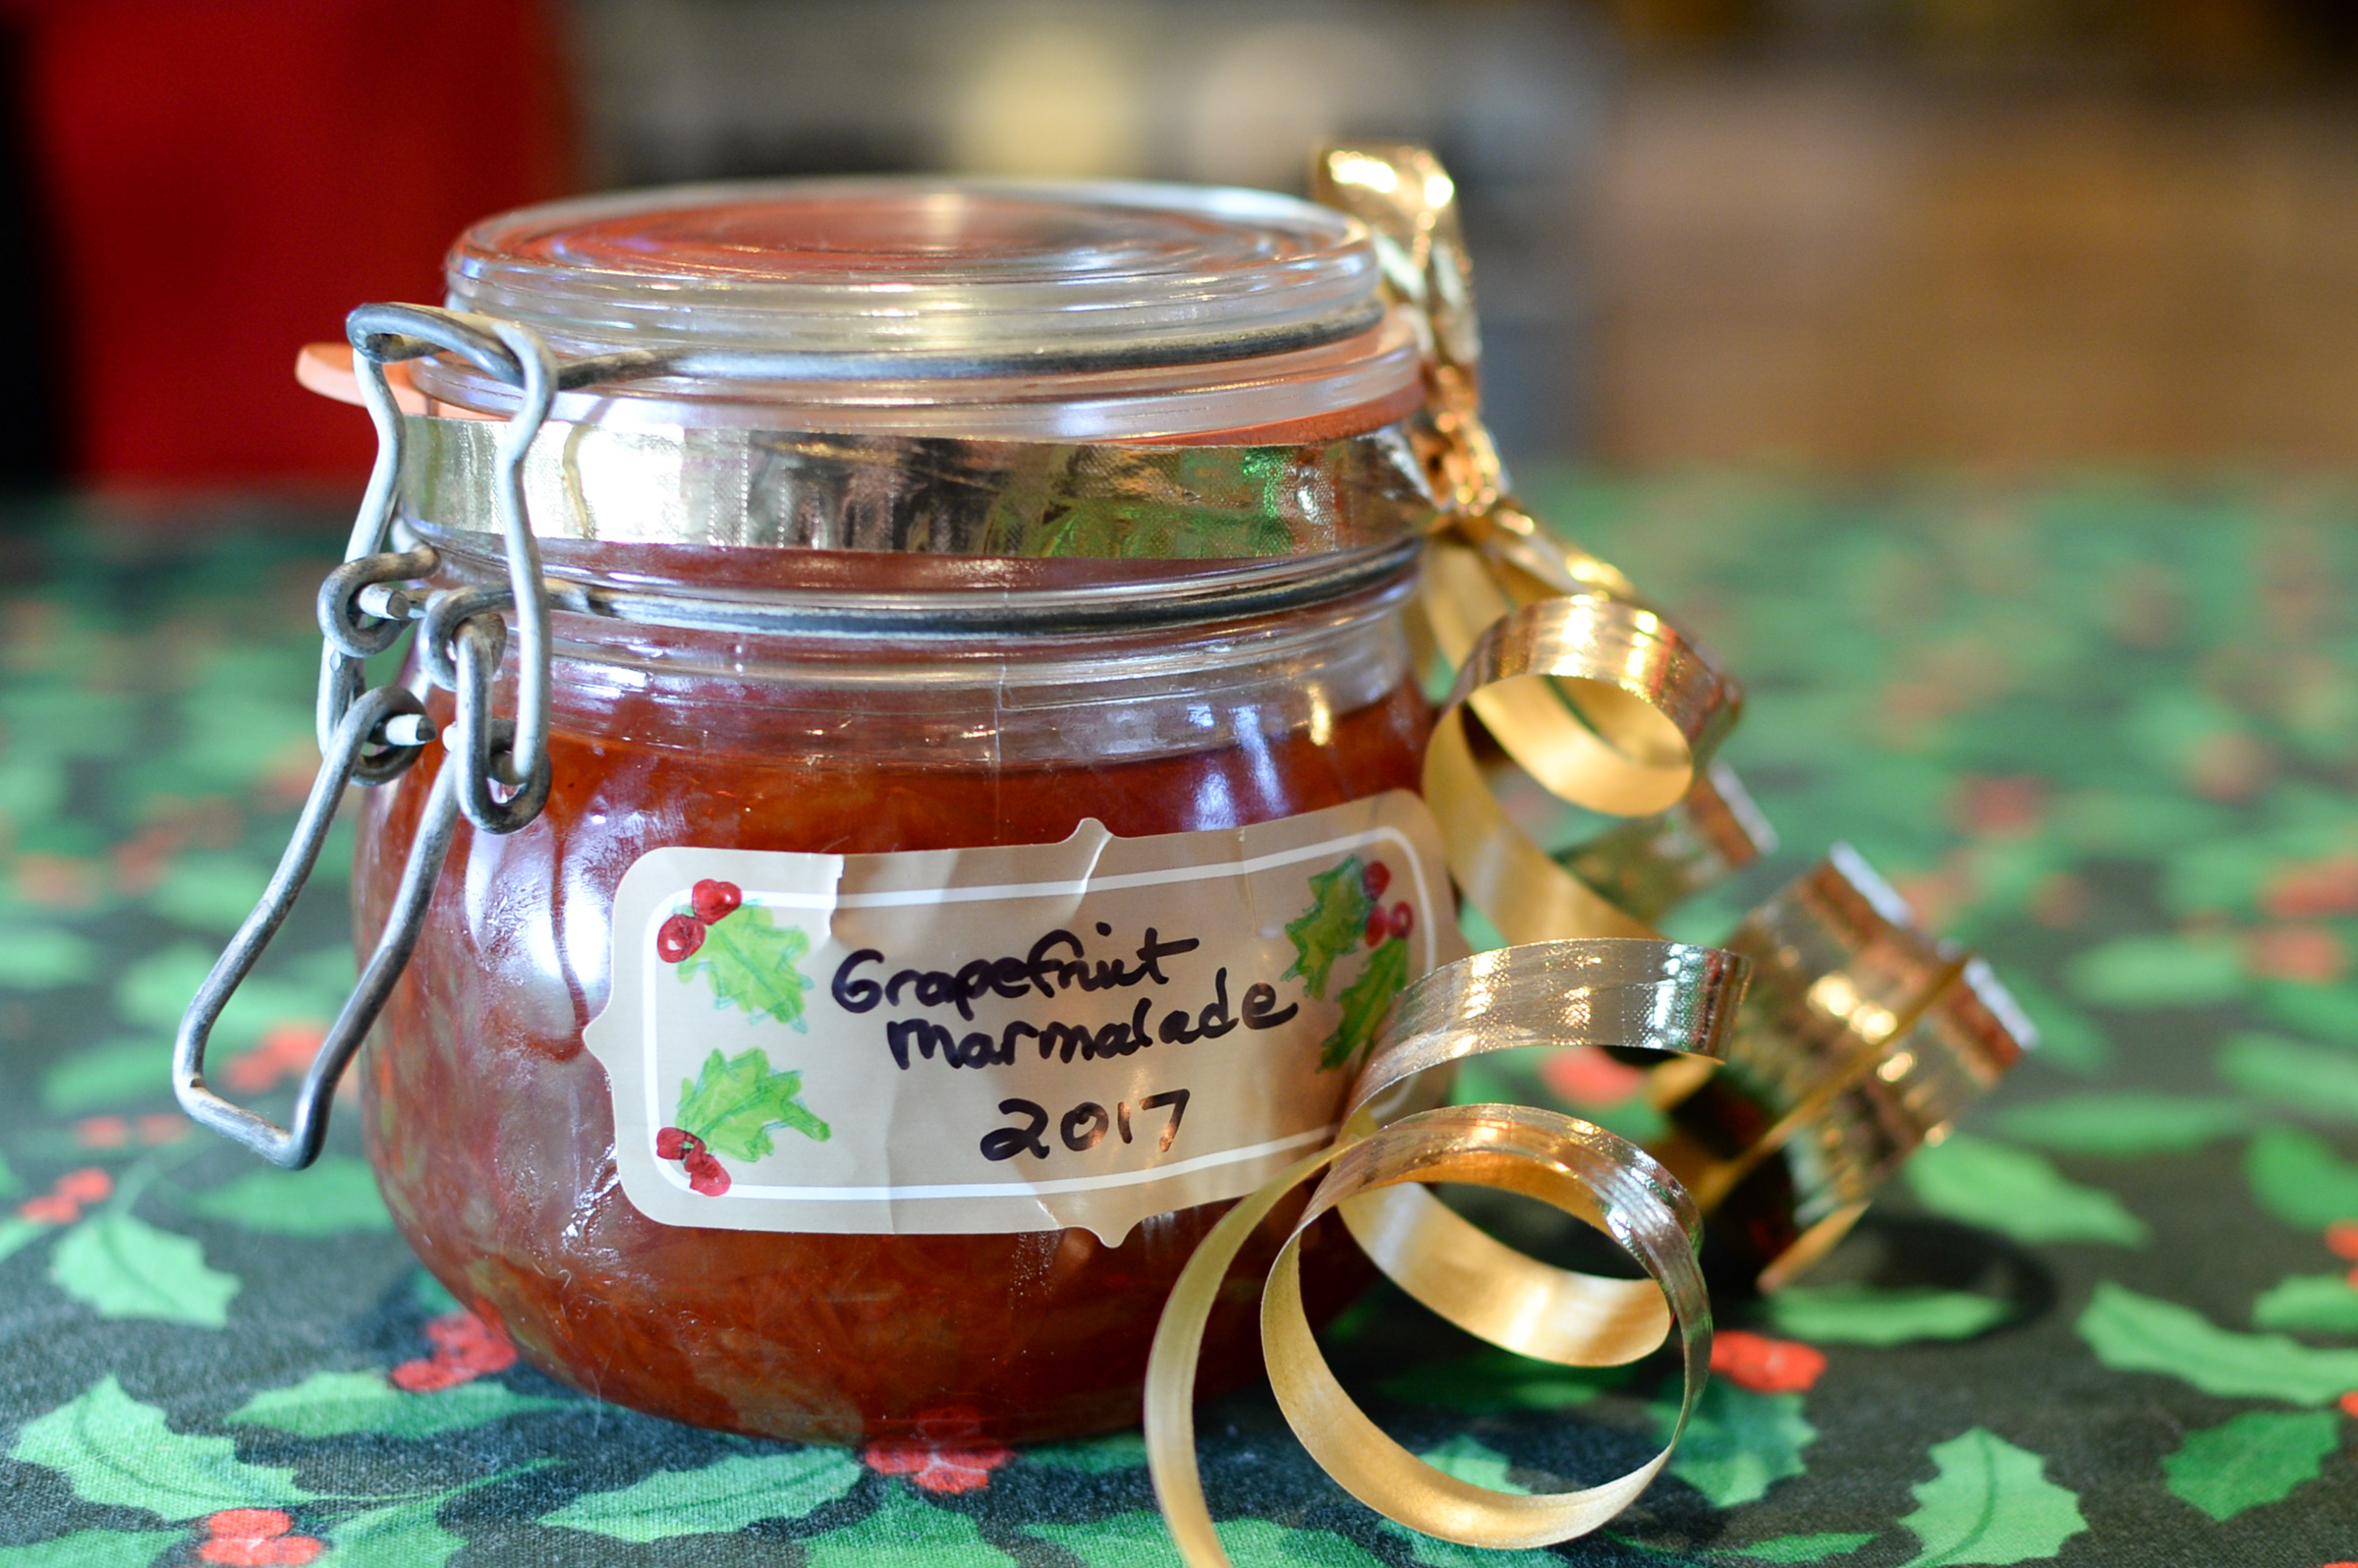 Grapefruit marmalade is a staple of the annual homemade food gifts.